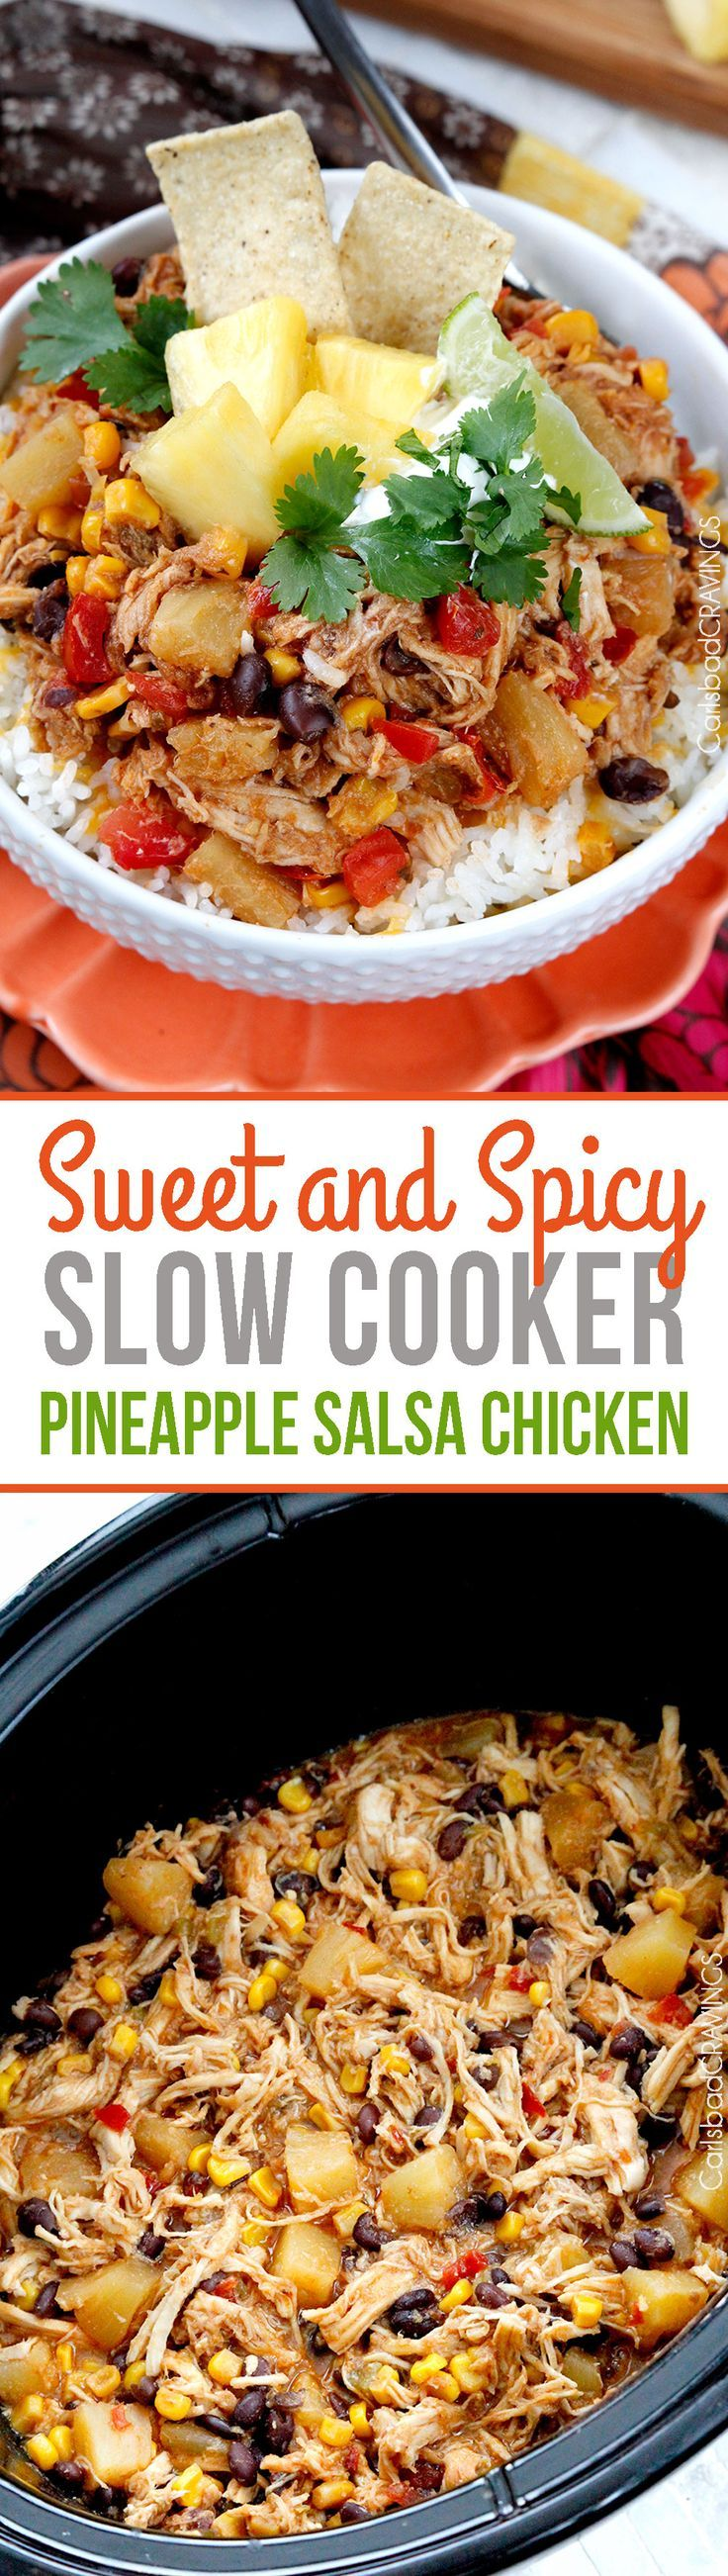 Slow Cooker Sweet and Spicy Pineapple Chicken - crazy good EASY, flavorful sweet, savory and spicy chicken for burrito bowls, salads, burritos, etc. #slowcooker #salsachicken #Mexicanchicken